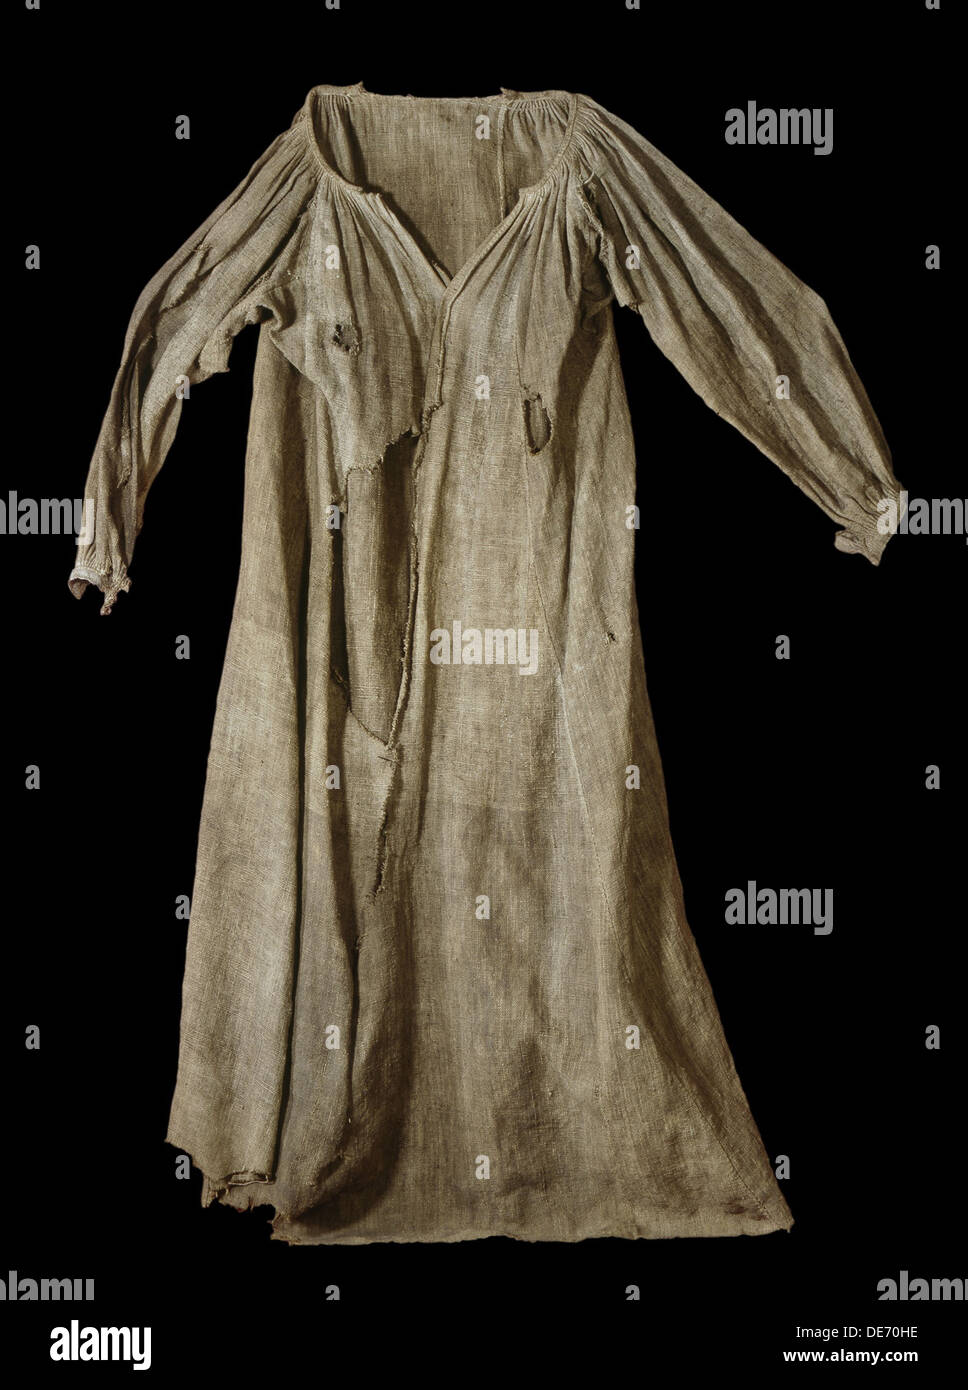 The Witch Gown of Veringenstadt, 1680. Artist: Objects of History ...